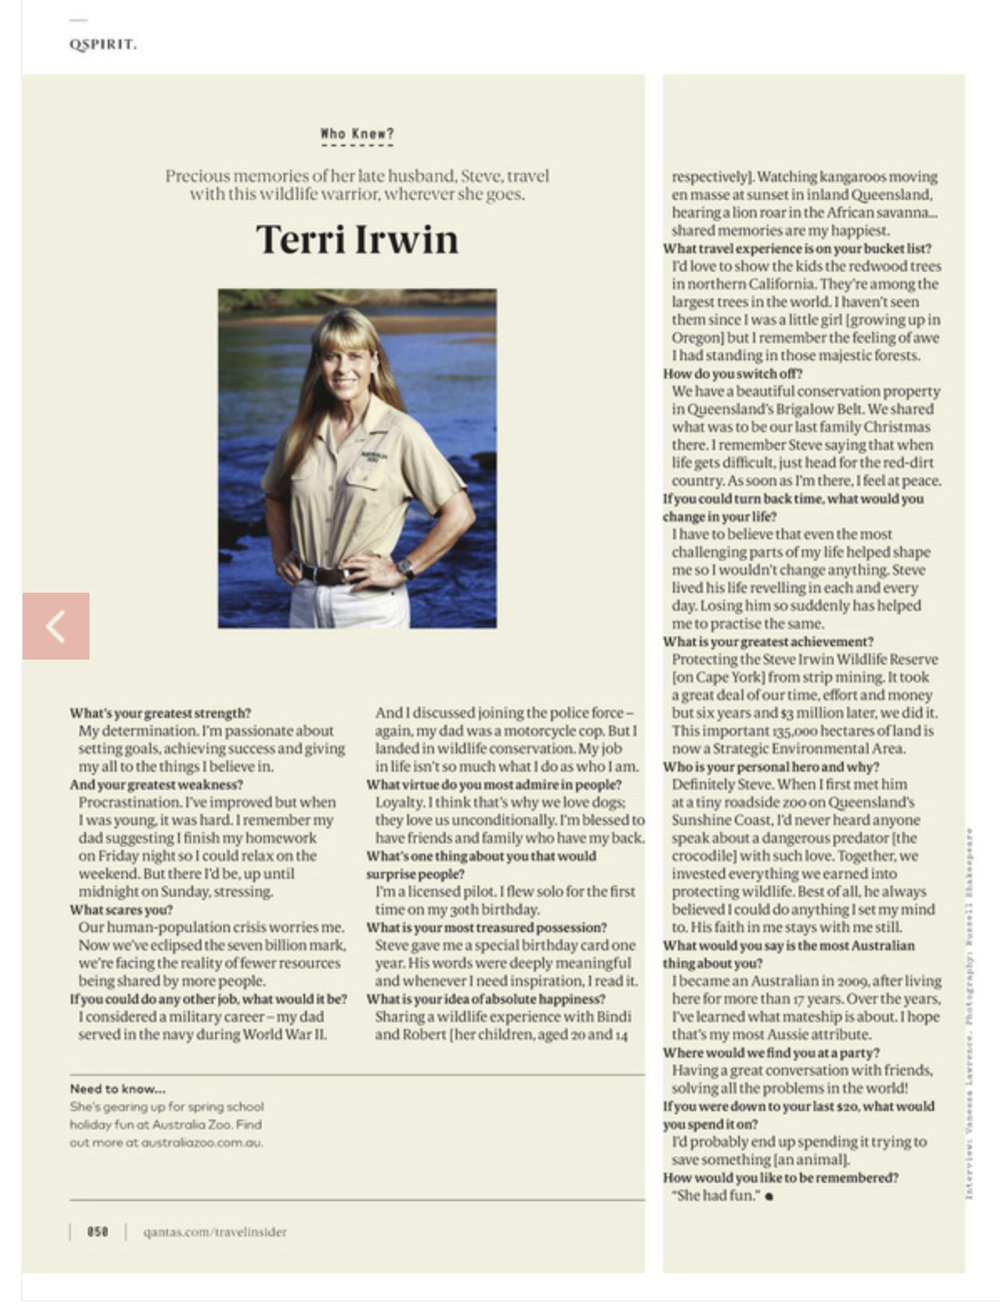 Terri Irwin photographed at The Steve Irwin Wildlife Reserve for Qantas Magazine